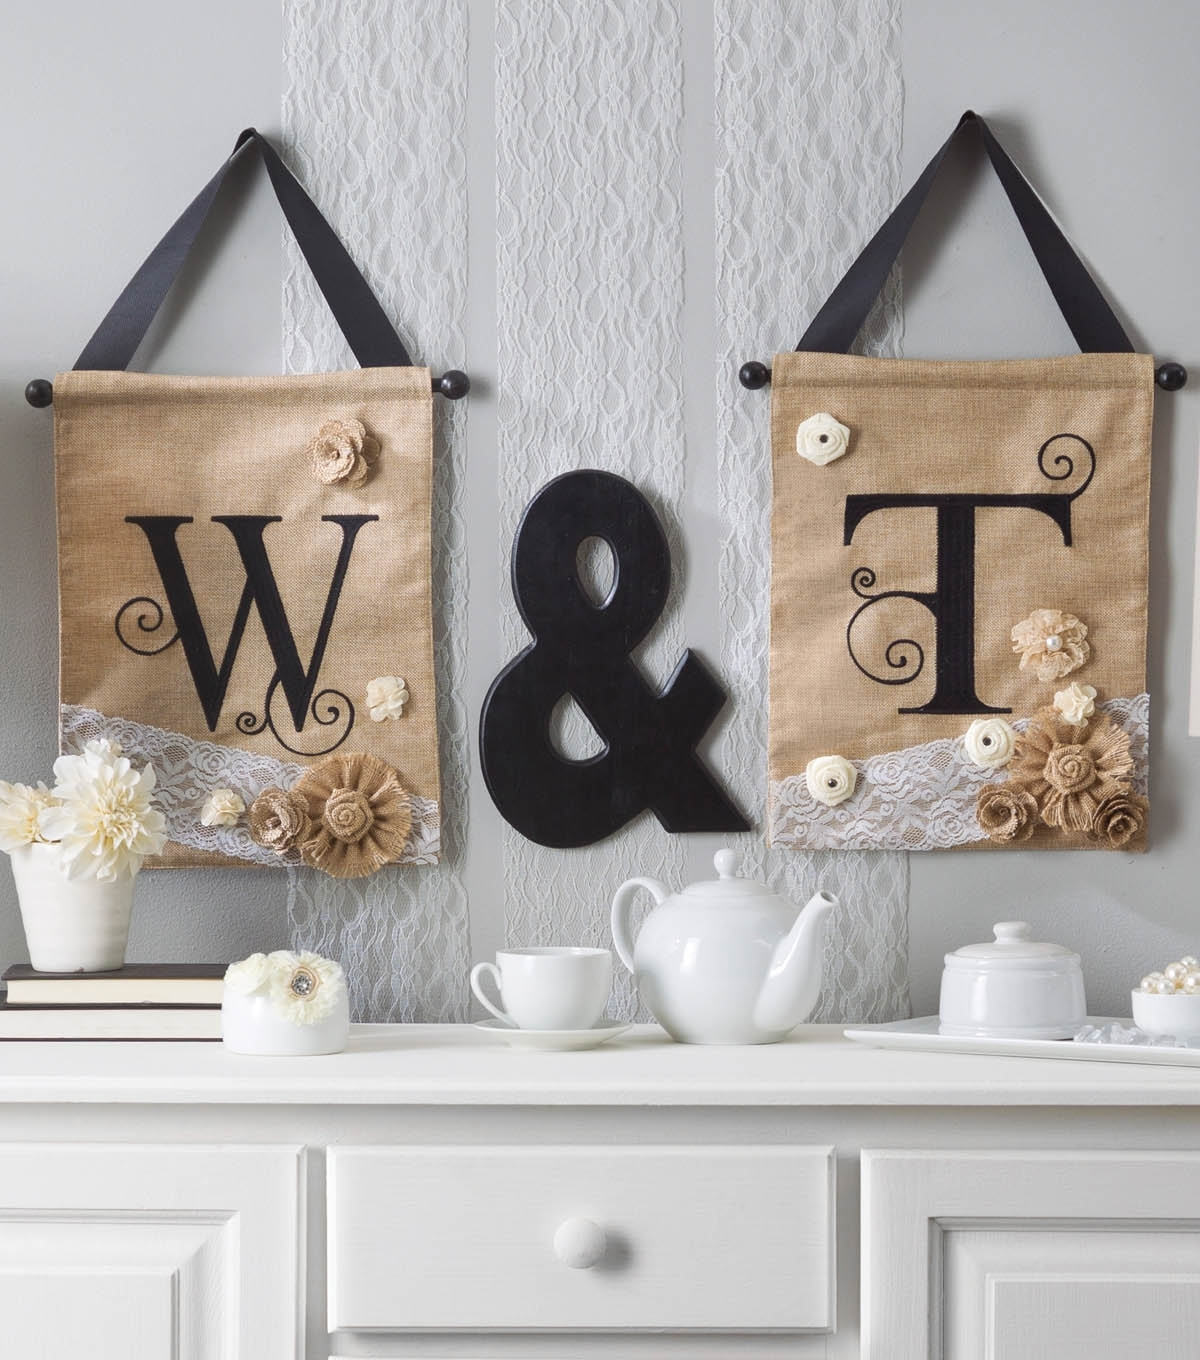 Embellished Initial Letters On Burlap Wall Hangings | Joann Pertaining To Most Recent Joann Fabric Wall Art (View 3 of 15)